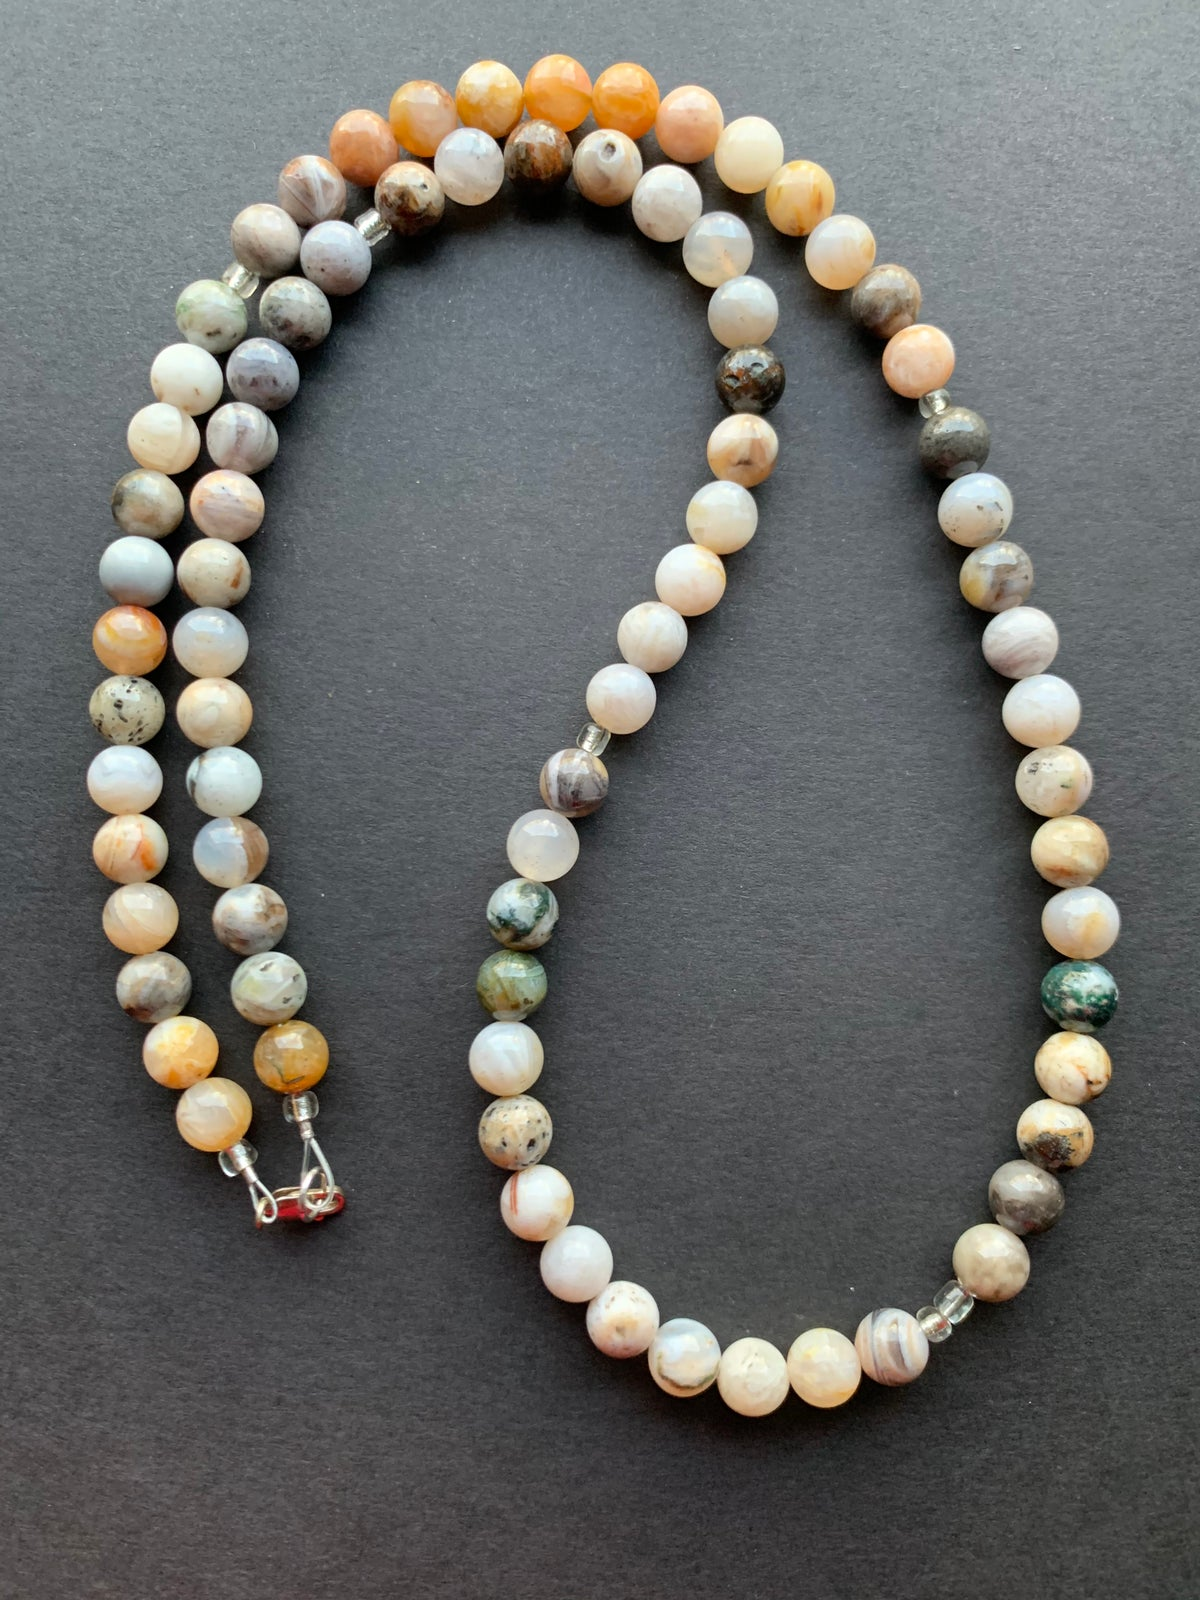 Image of Natural Quartz Necklace